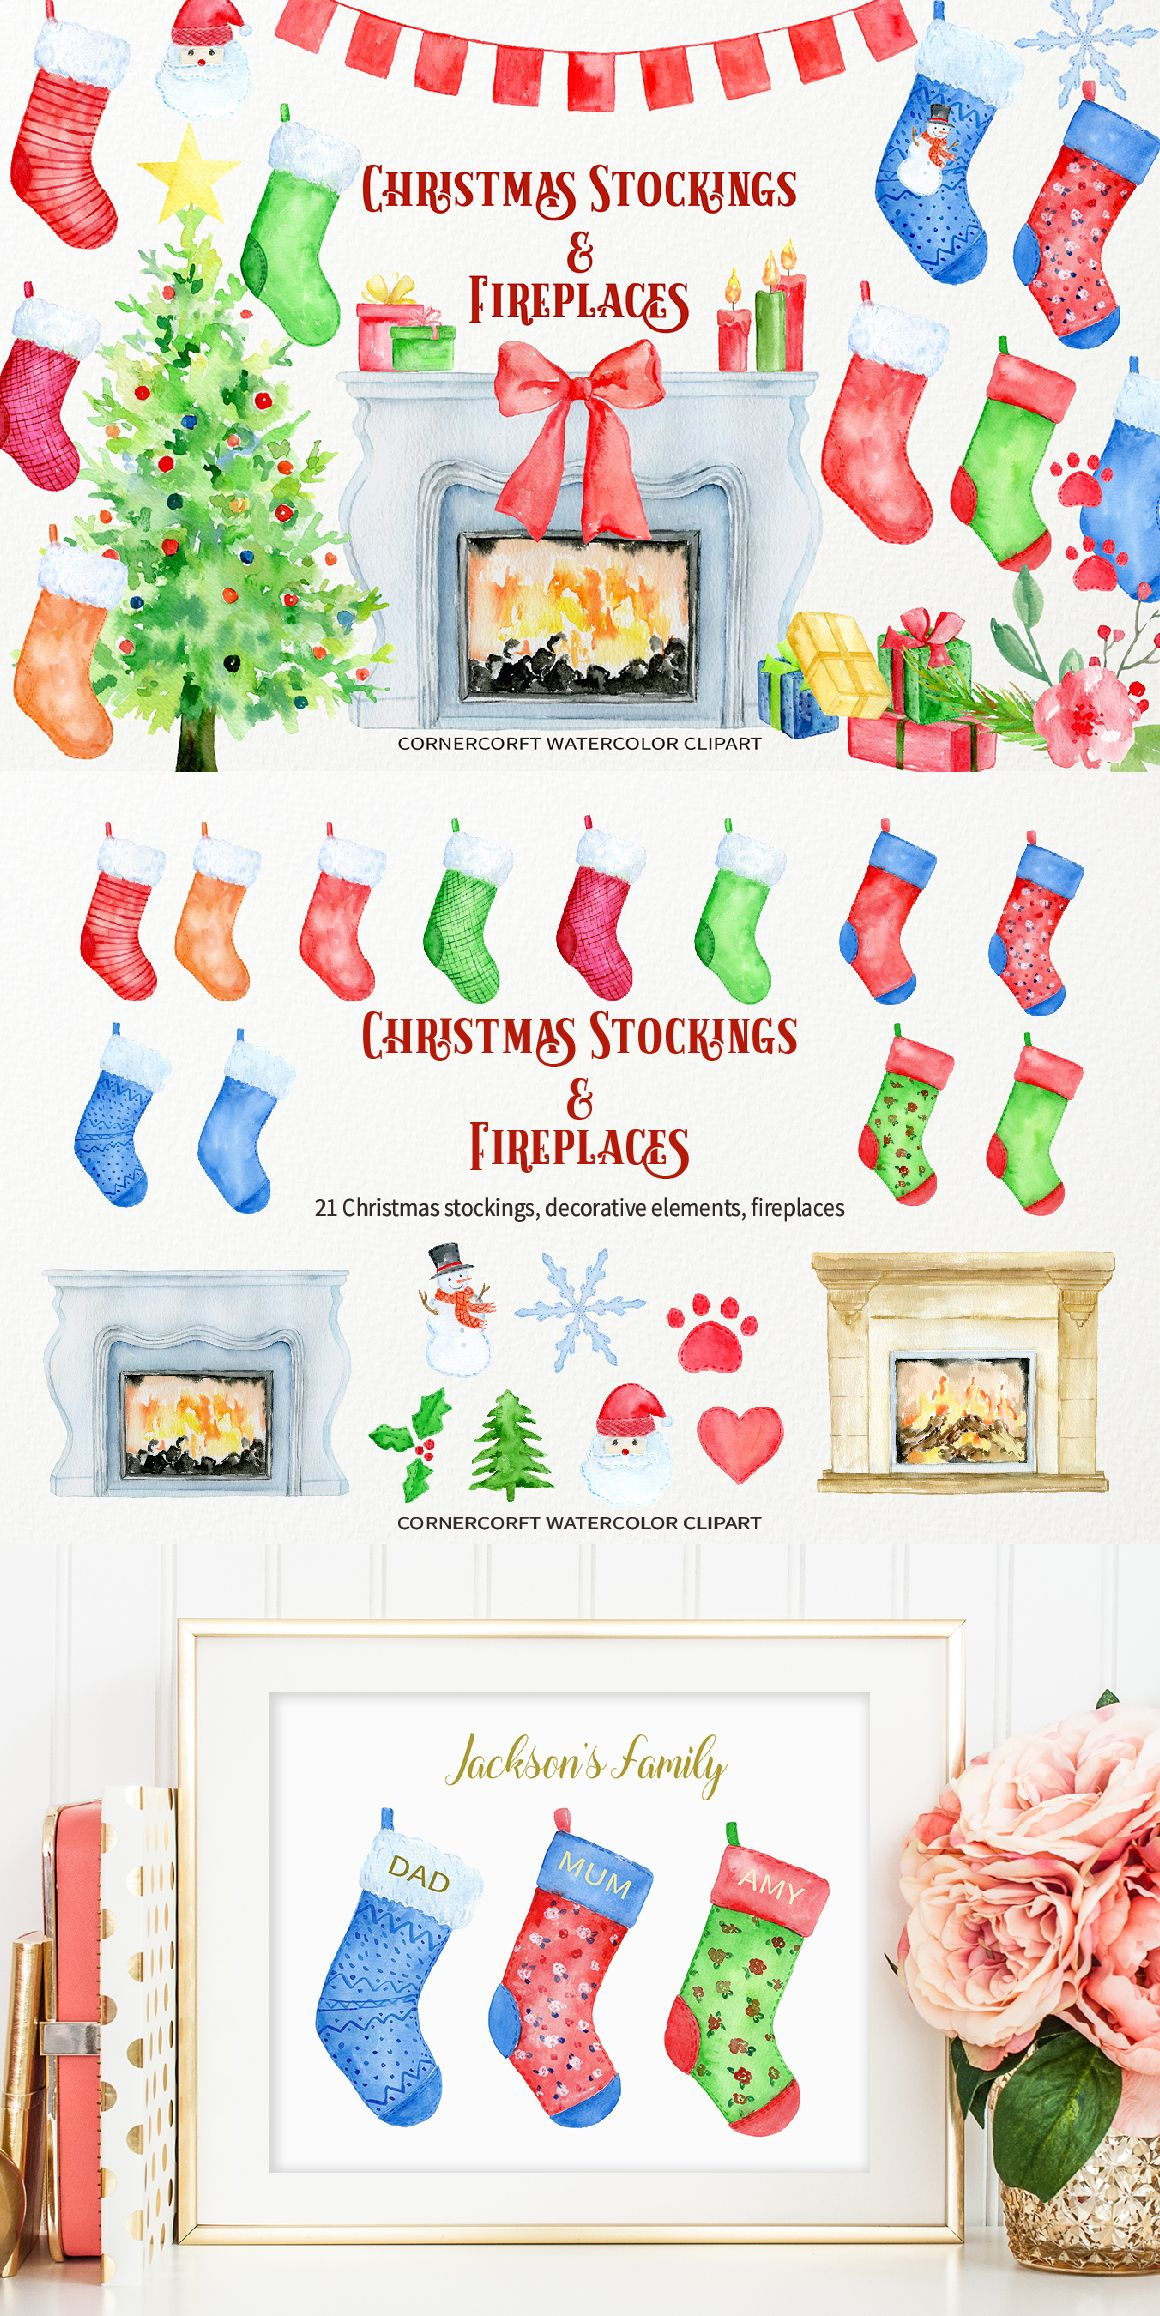 Watercolor Clipart Christmas Stocking and Fireplace for.